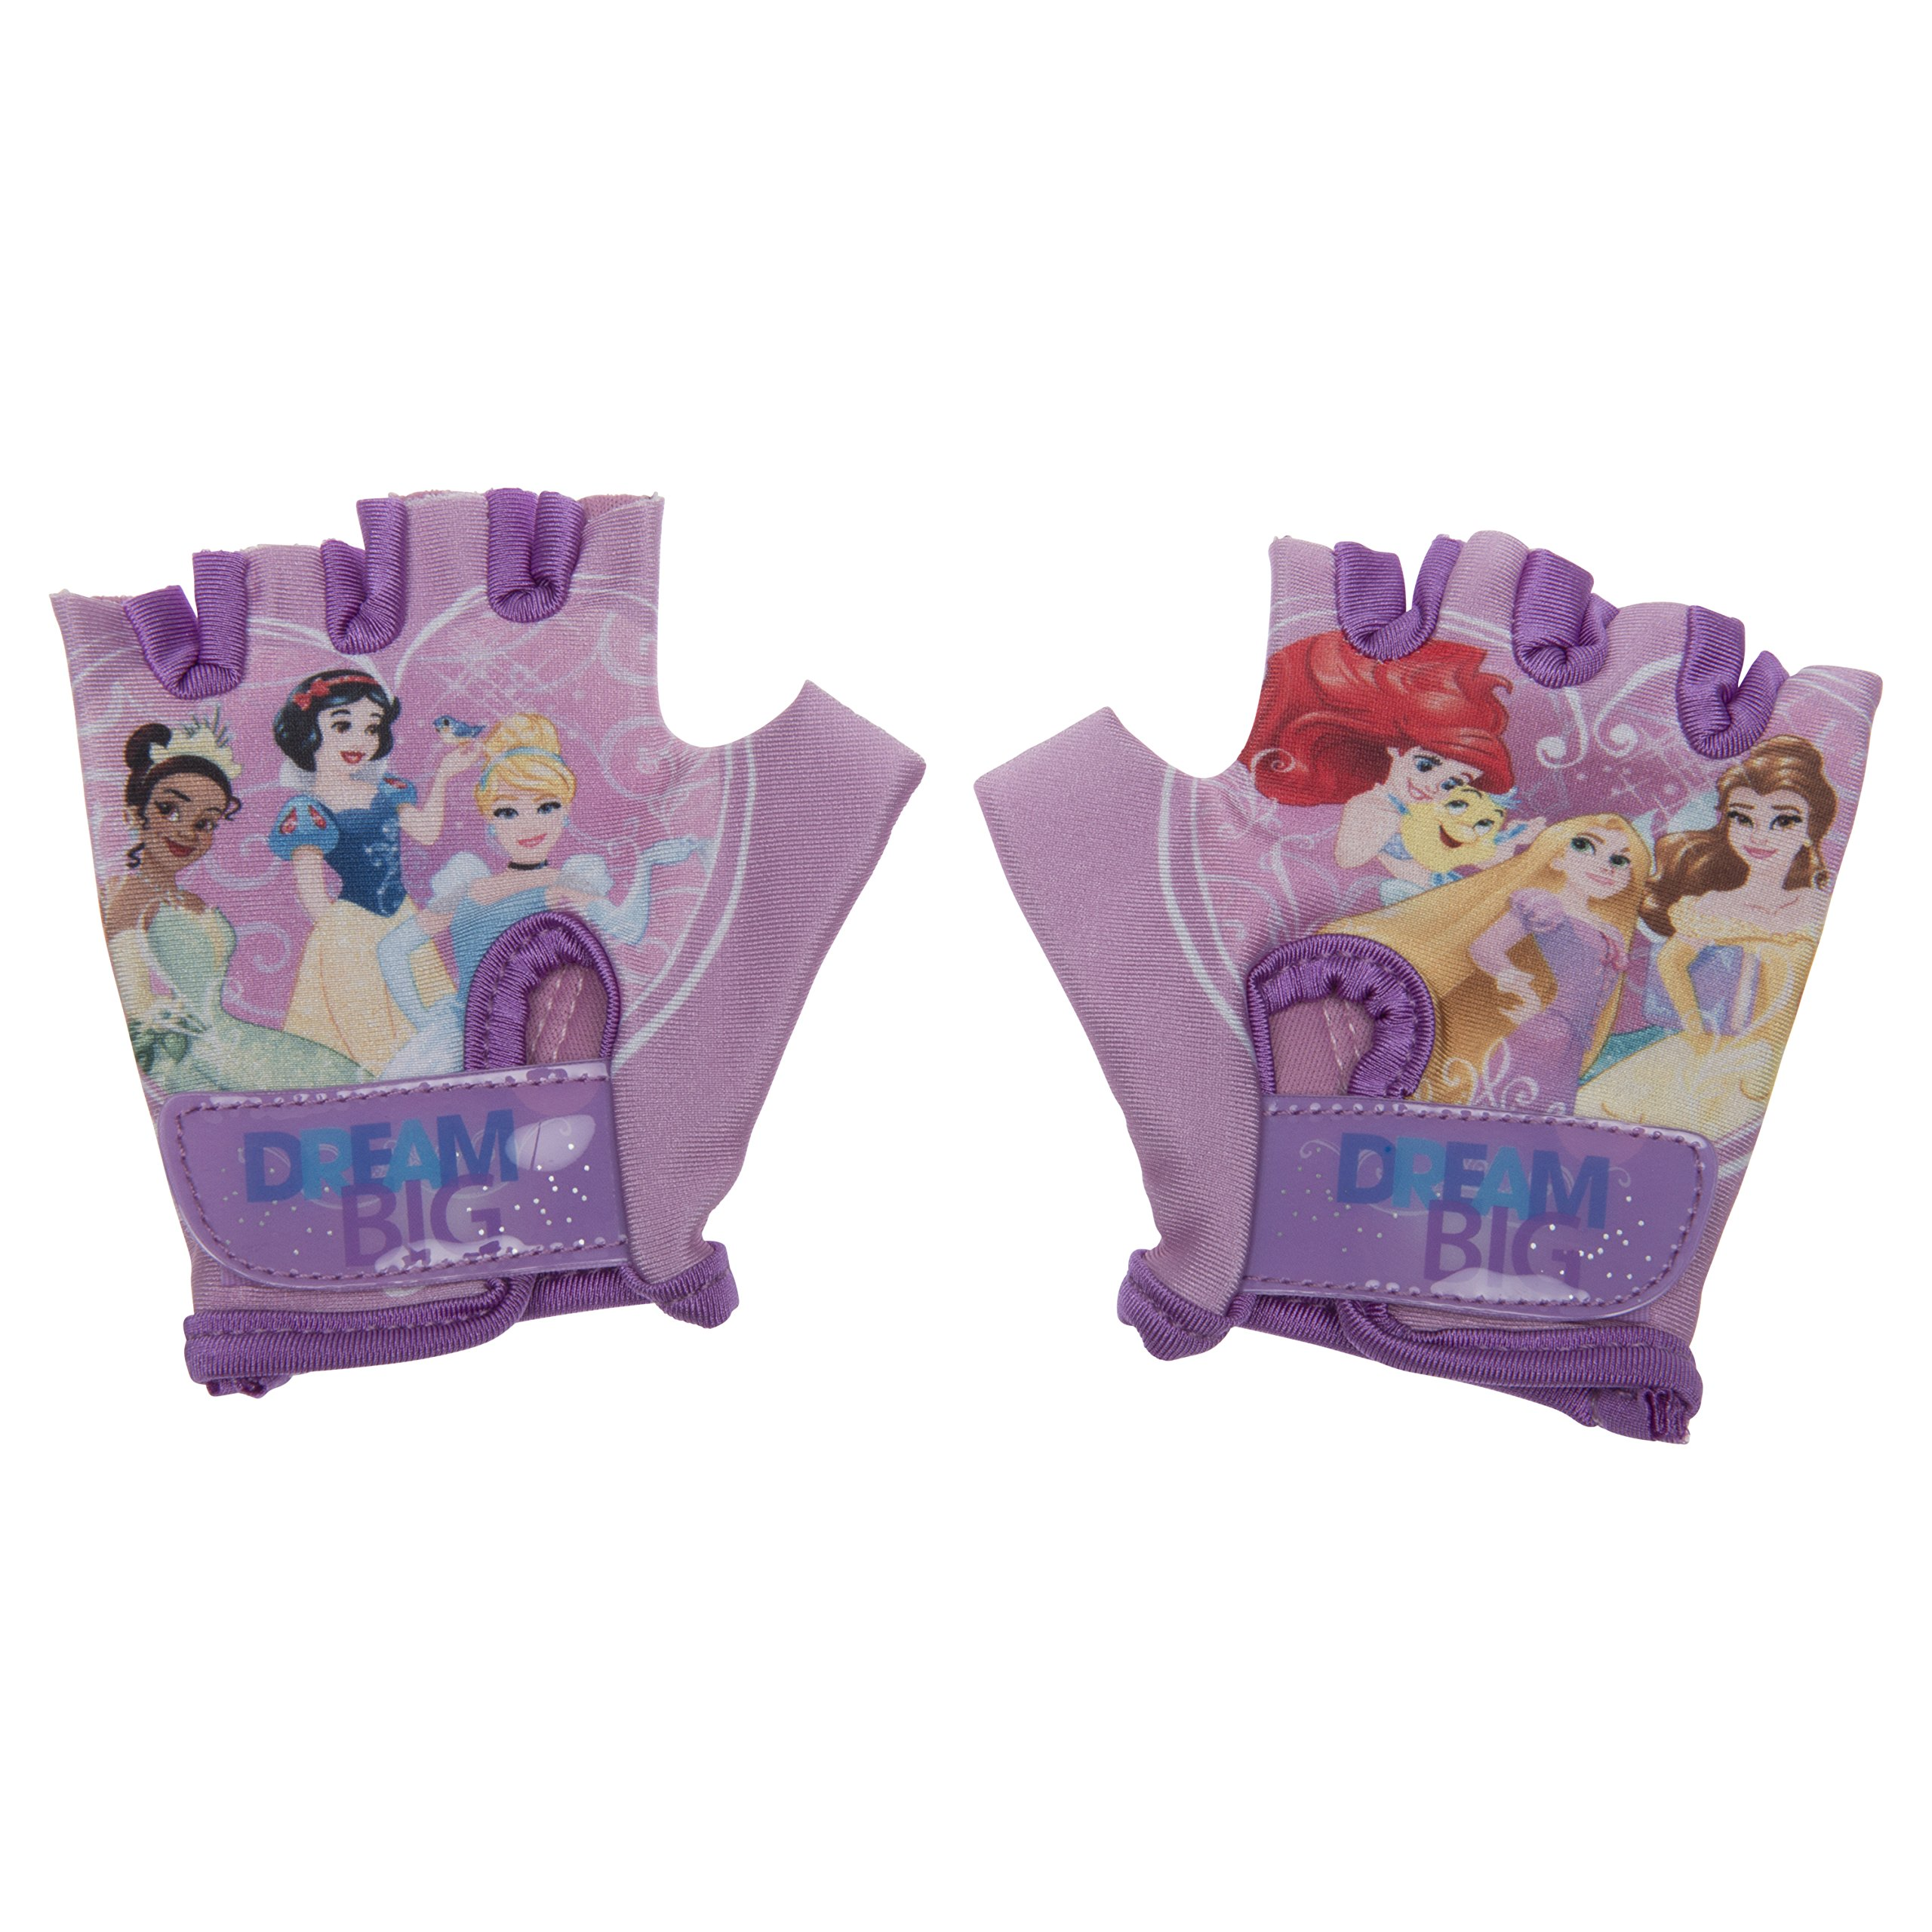 Bell Disney Princess Pad & Glove Set by Bell (Image #2)